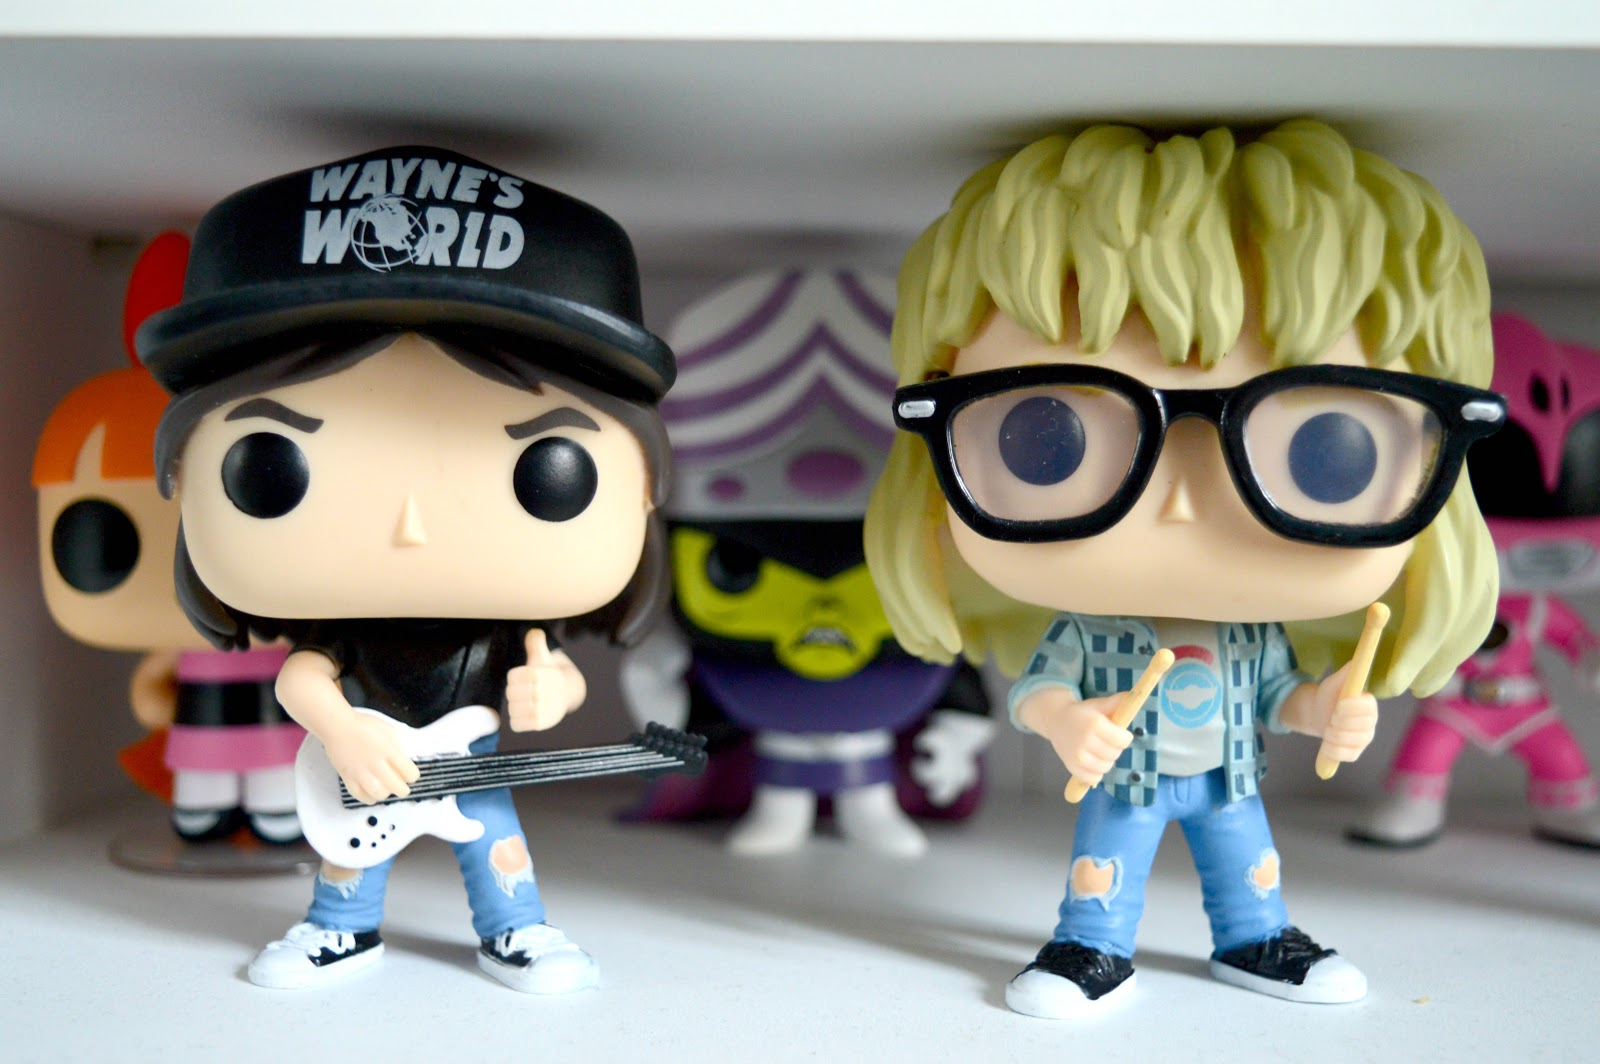 A picture of the Wayne and Garth Funko POPs from Wayne's World